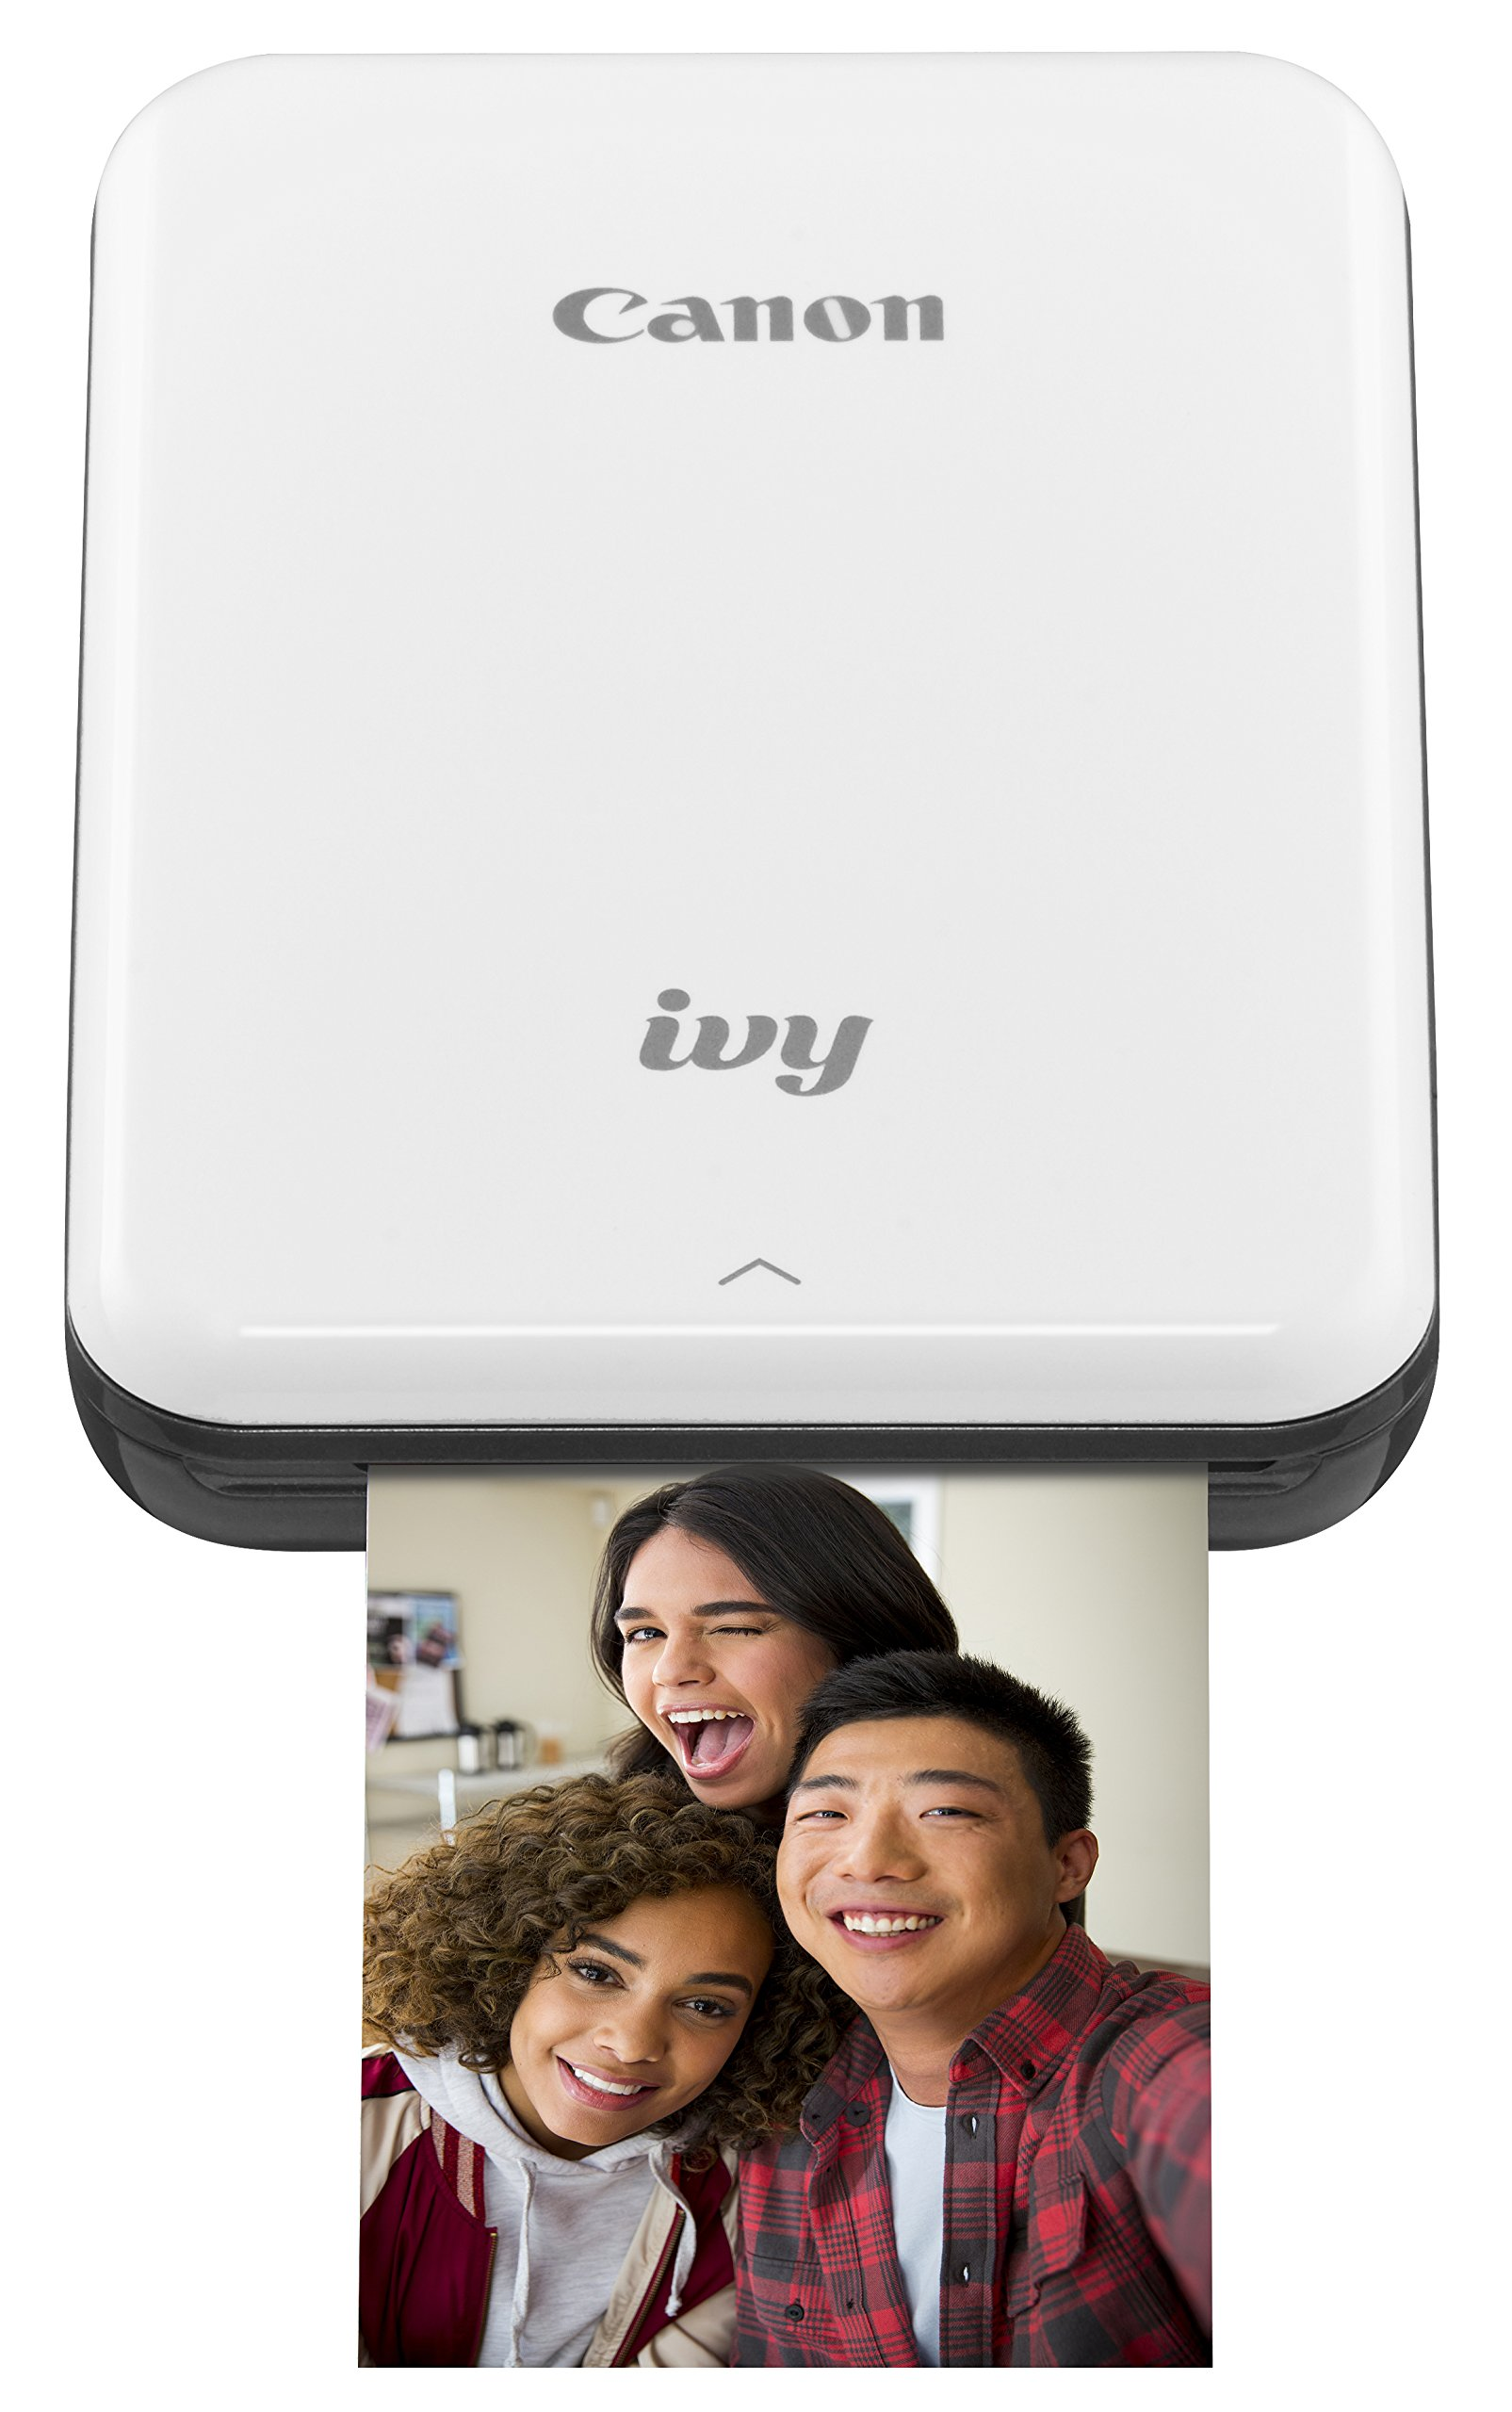 Canon IVY Mobile, Portable Mini Photo Printer, Slate Gray with Zink Photo Paper Pack, 50 sheets by Canon (Image #1)